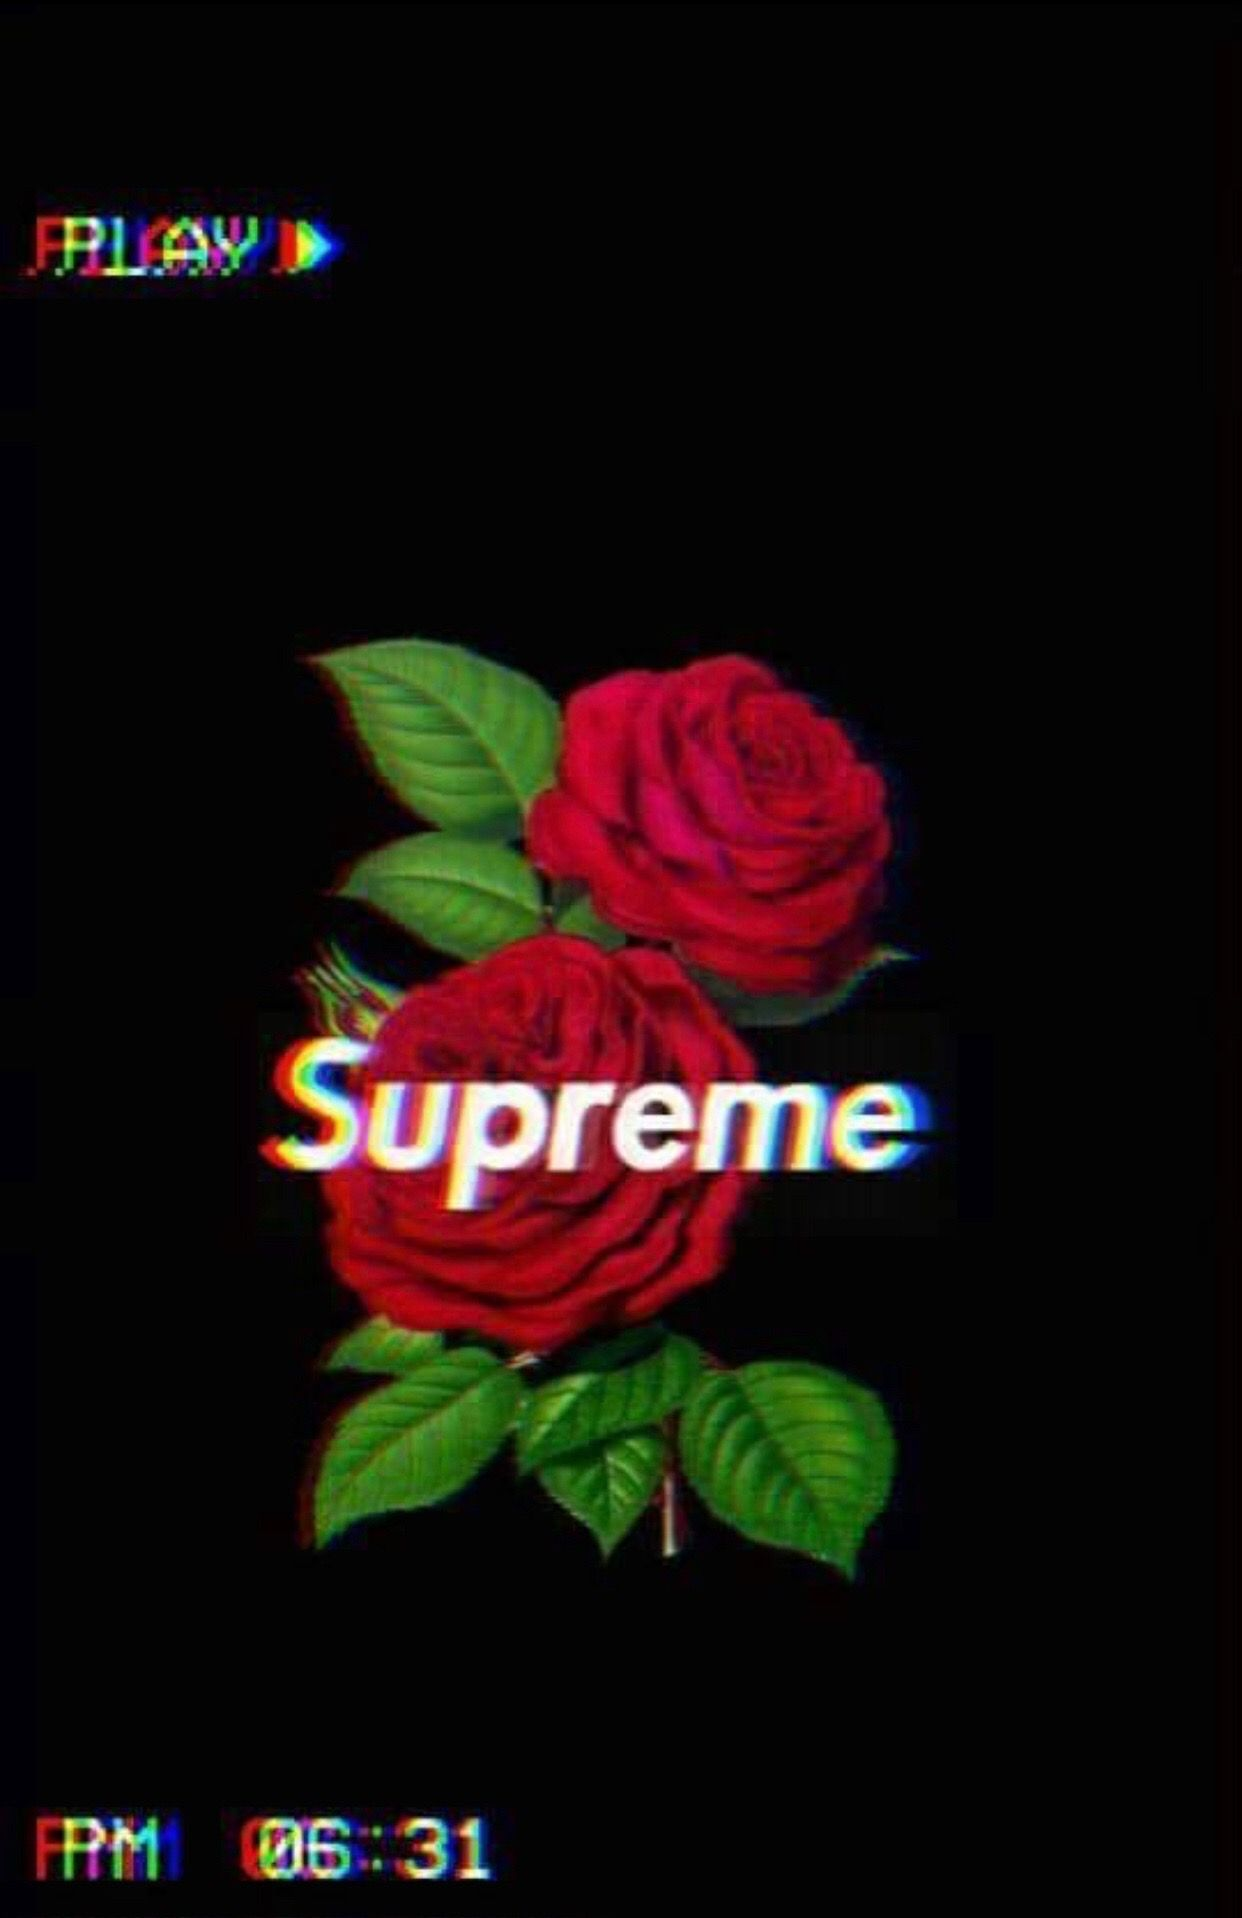 Pin by NE on Supreme wallpaper Supreme wallpaper Dope wallpaper 1242x1918